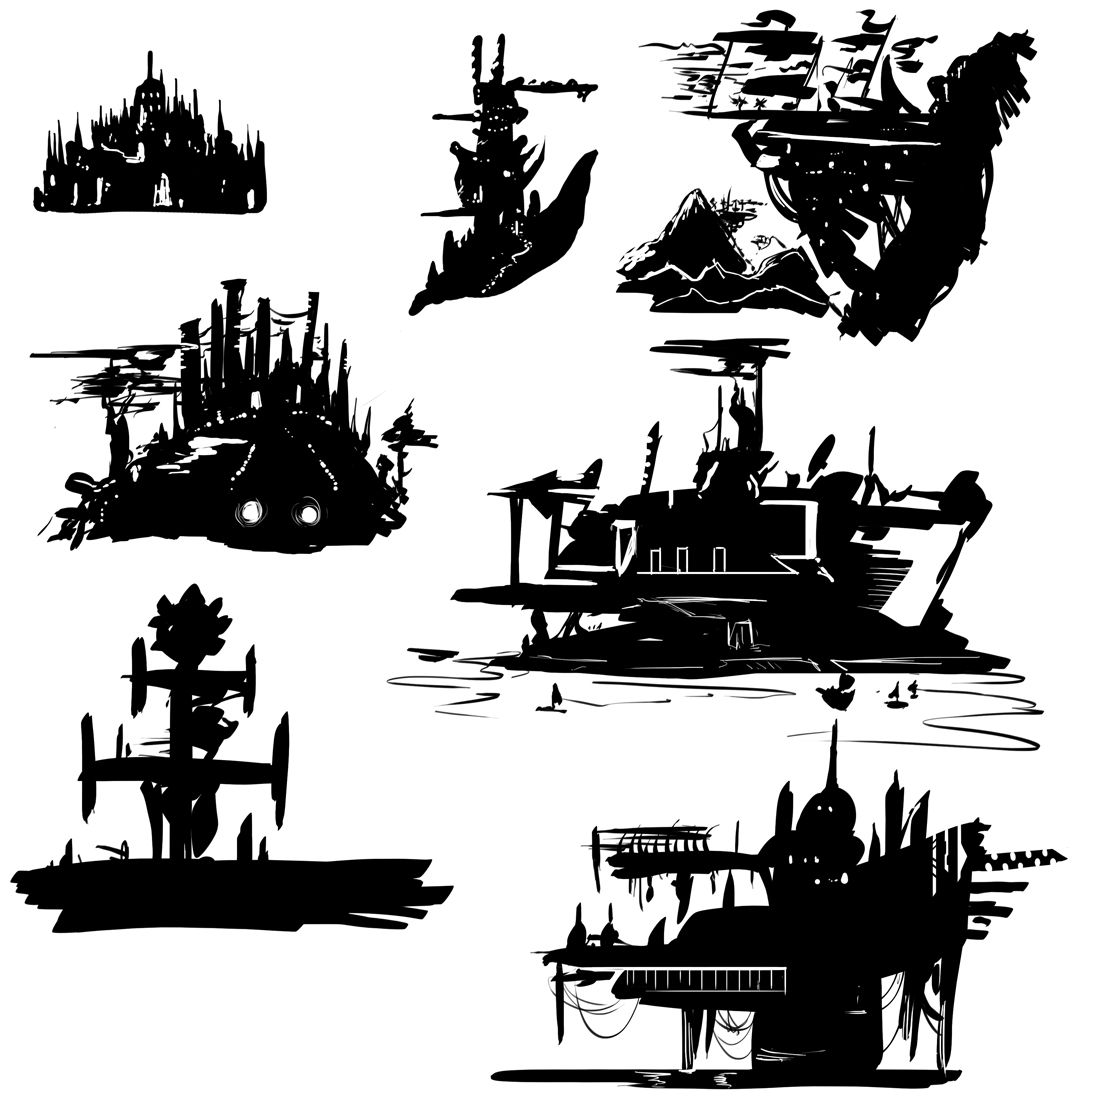 Pin By Sean Kenney On Sci Fi Silhouette Concept Art Characters Sillouette Art Concept Art Black cat house roof stars silhouette